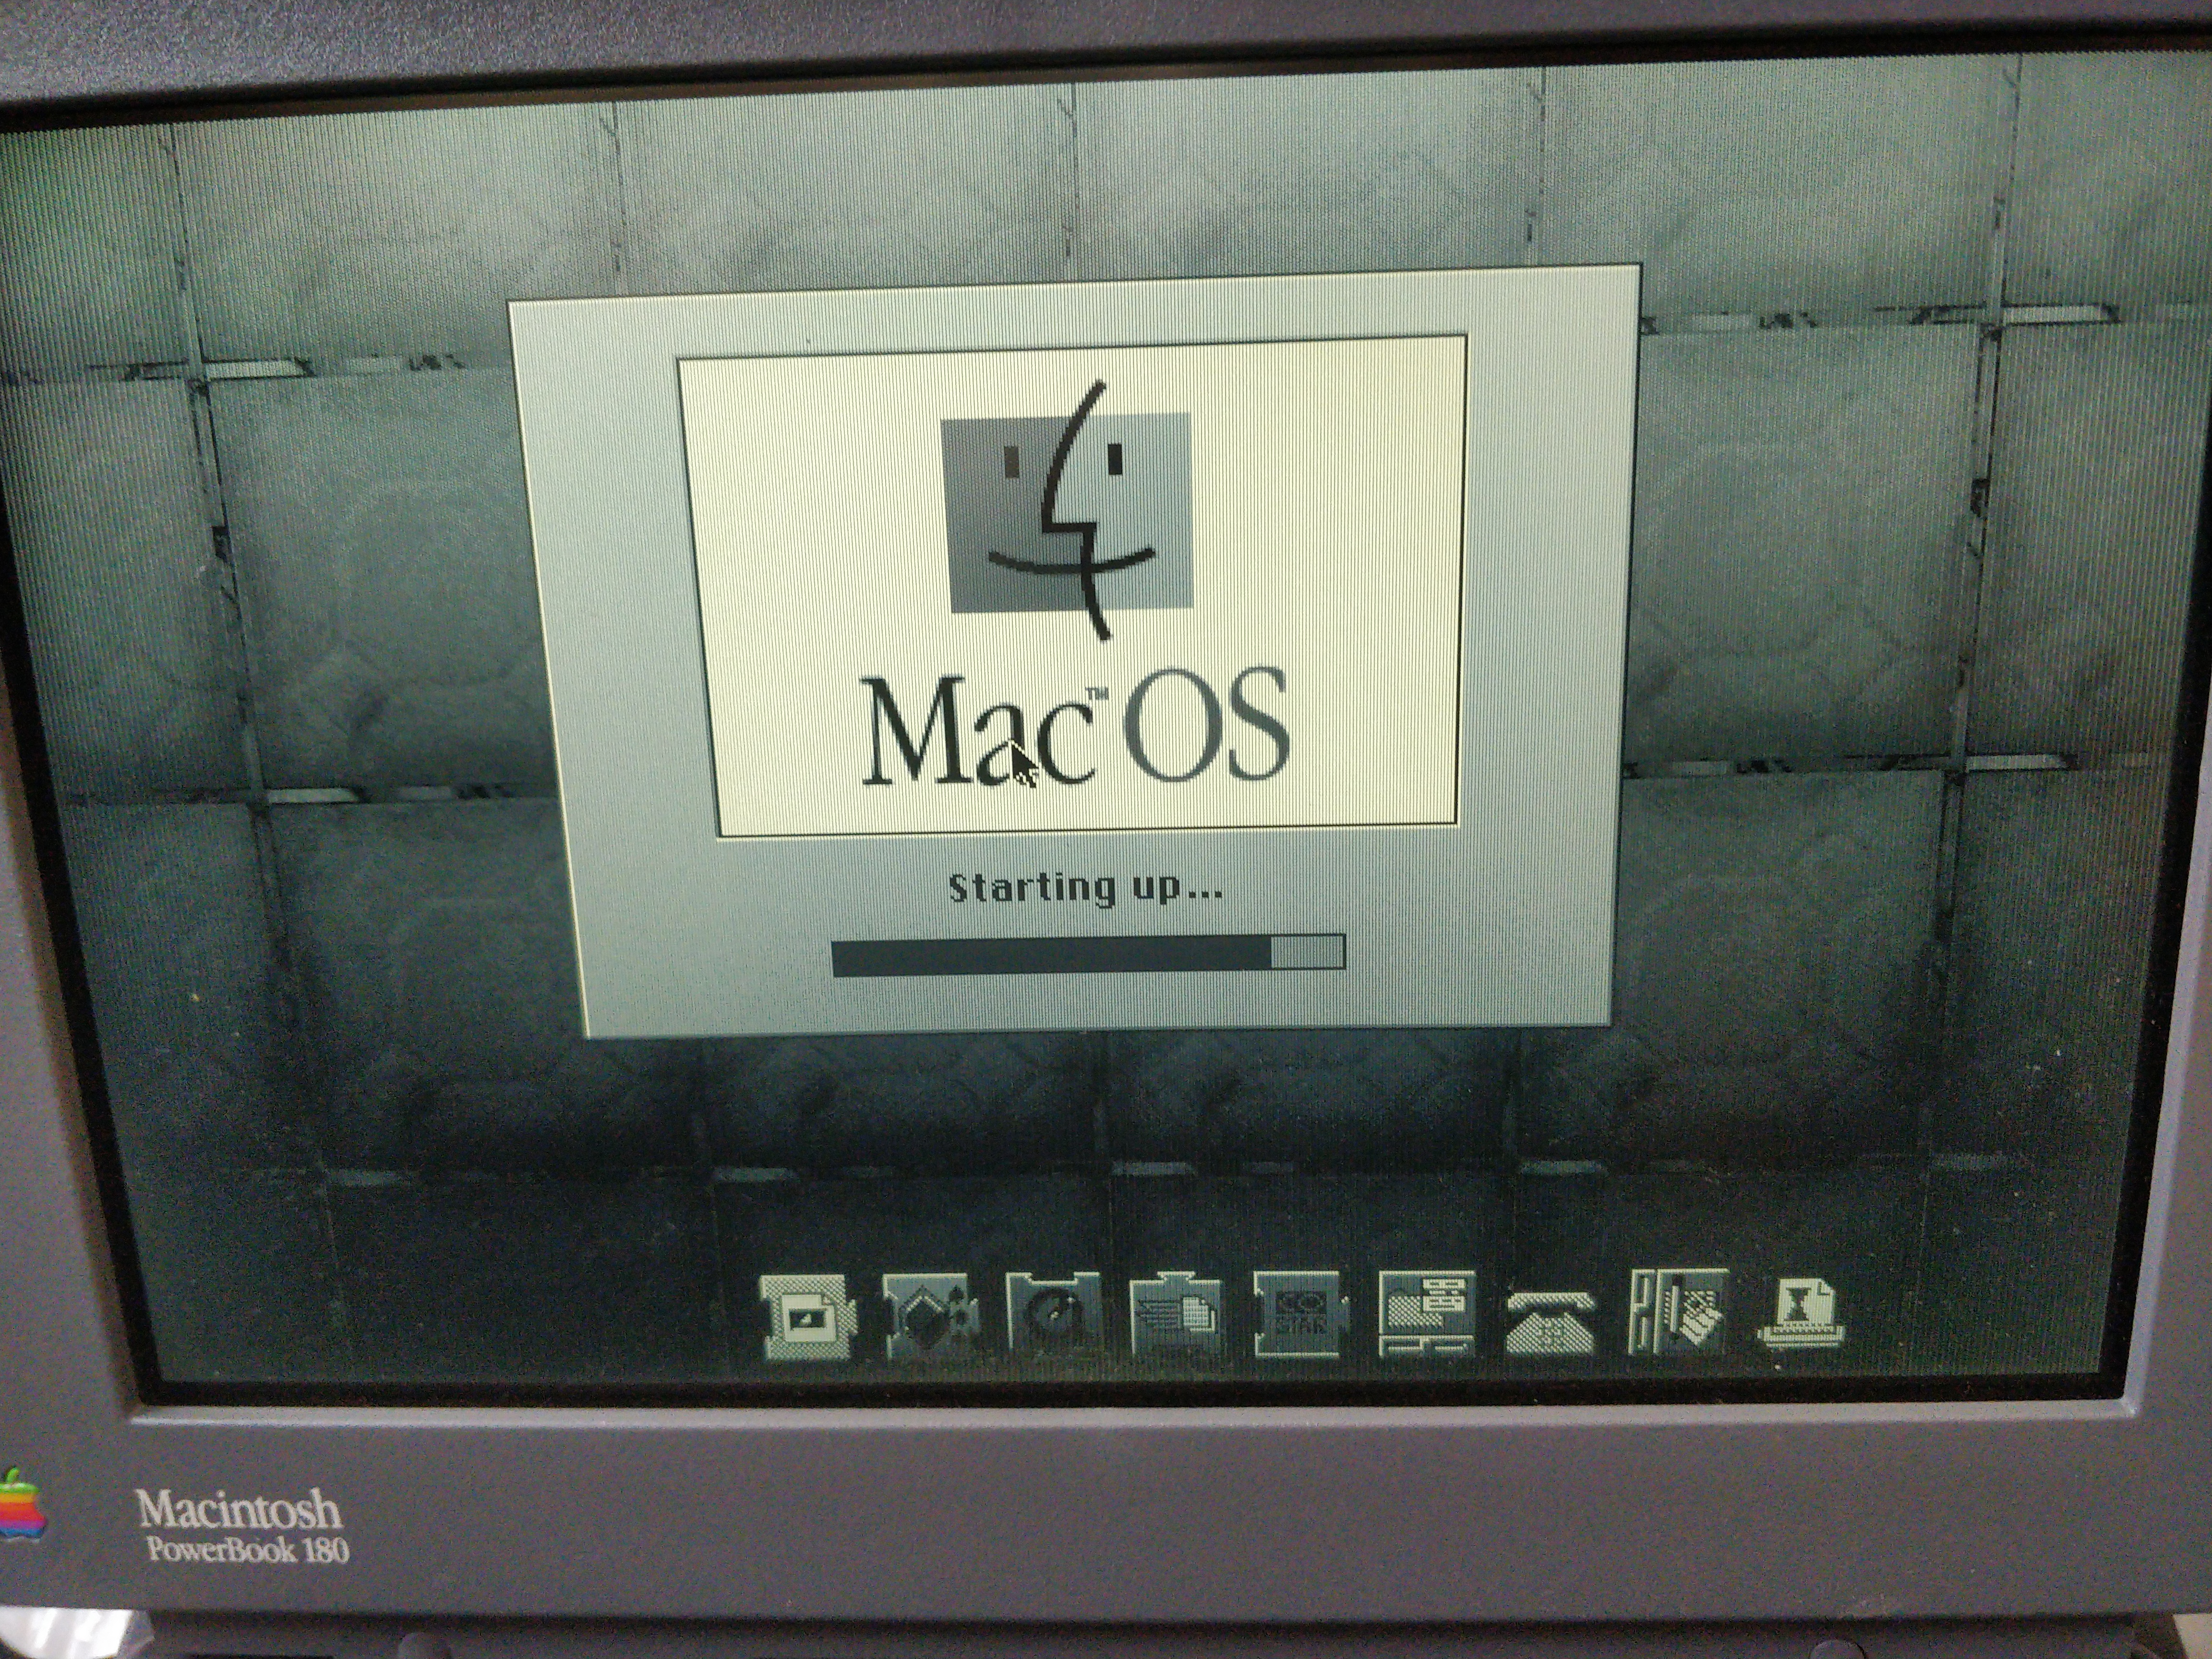 《Macintosh PowerBook 180体验》